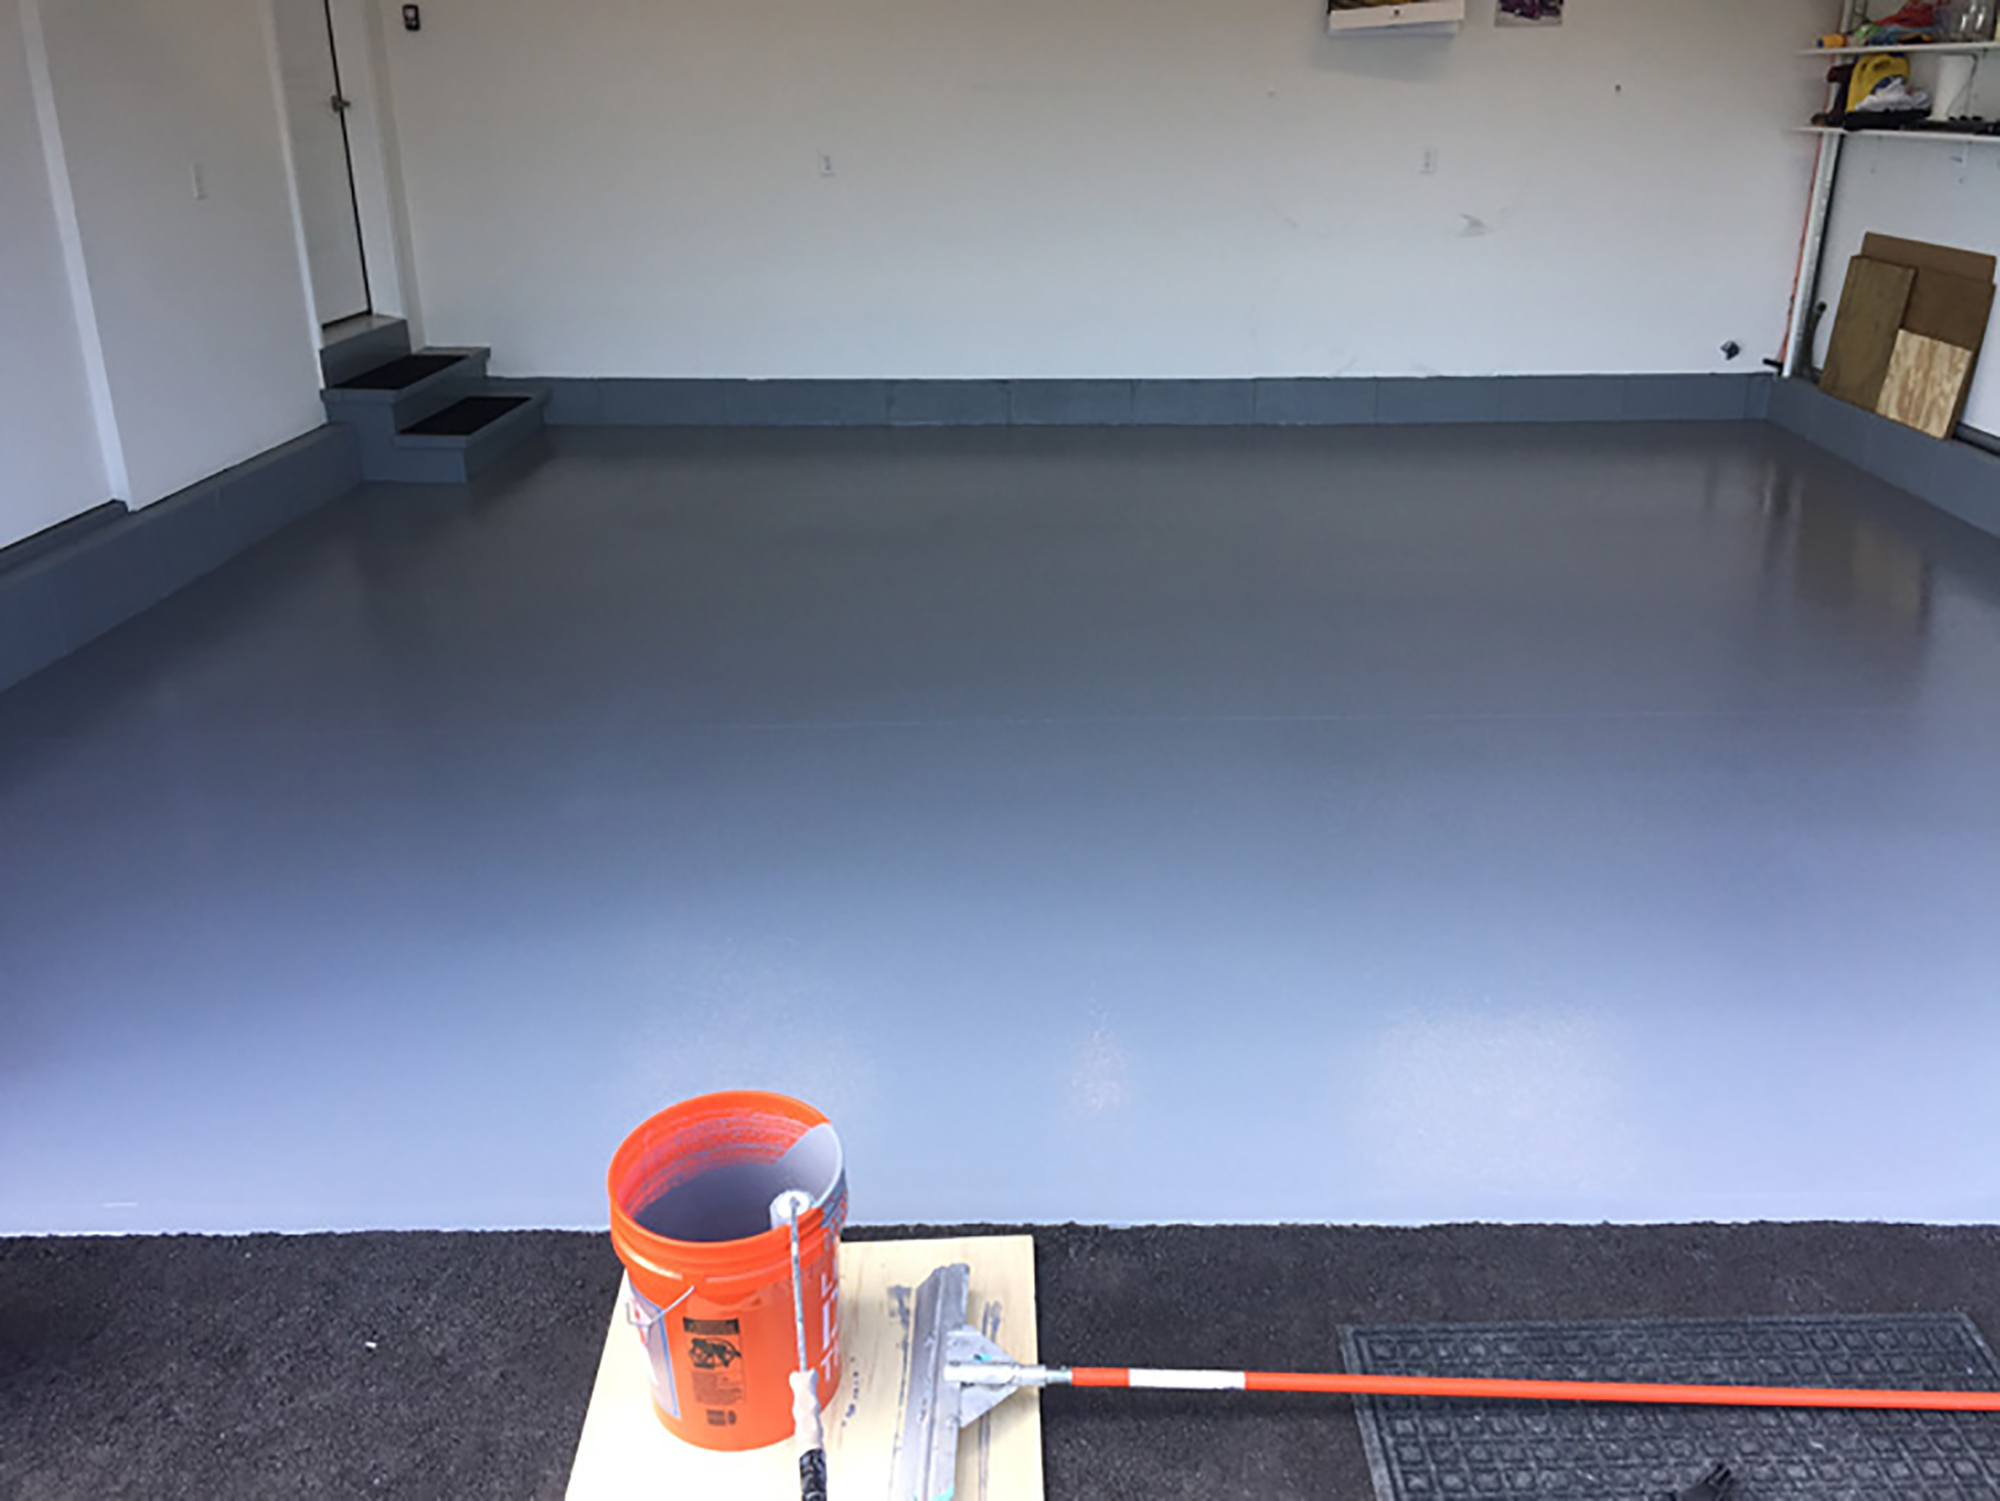 Residential Garage - After Epoxy Install